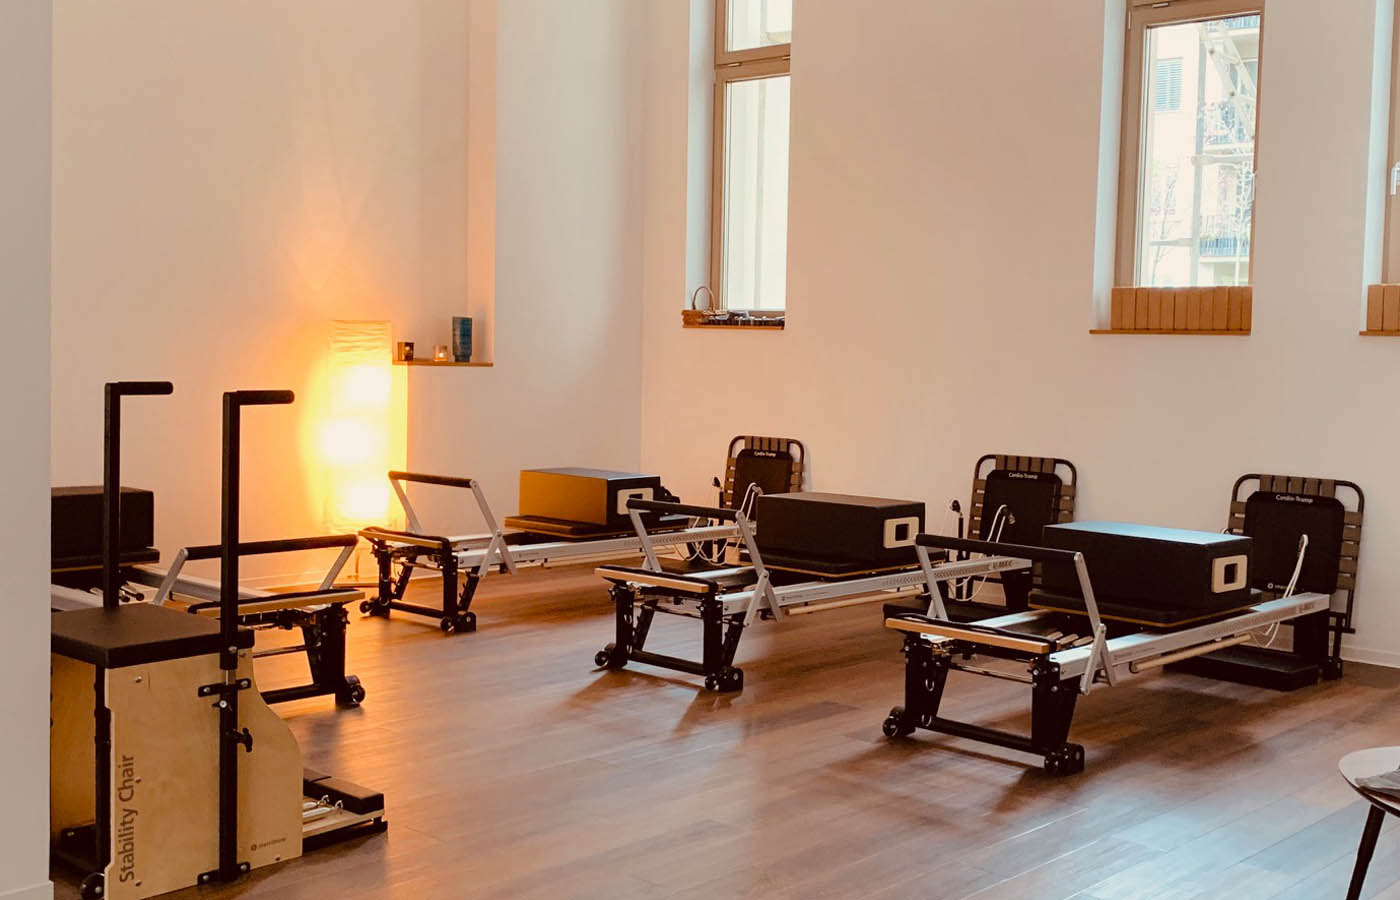 Pilates Movement Berlin Flottwellstr Reformer Gleisdreieck